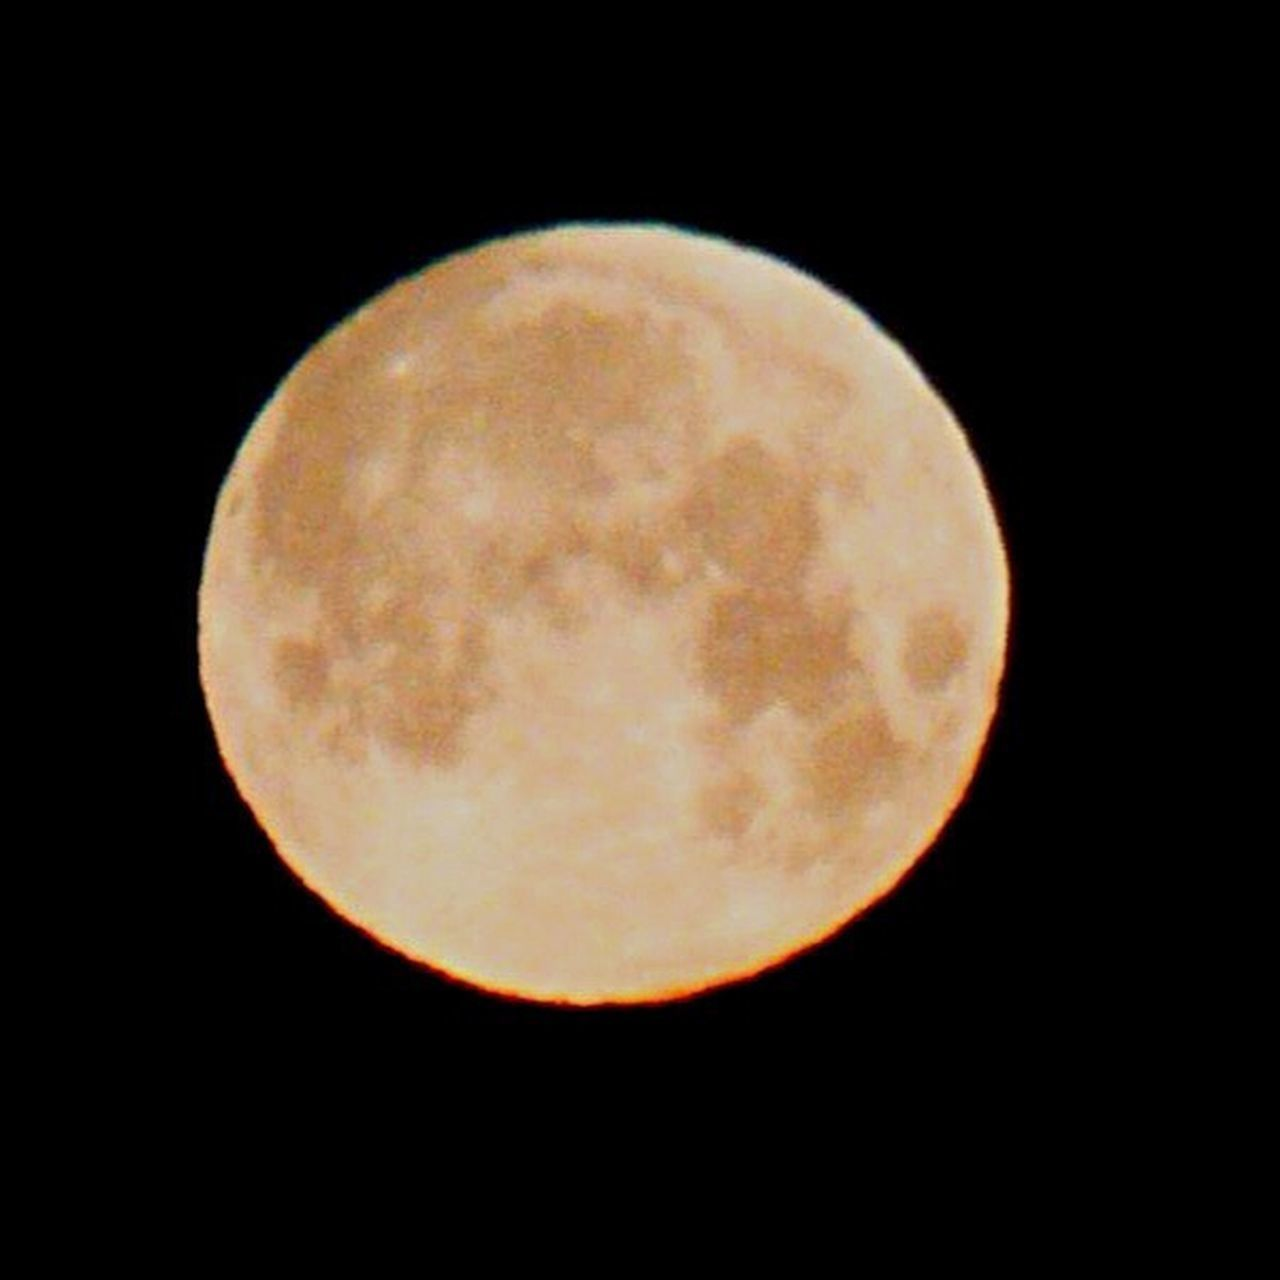 moon, astronomy, night, full moon, moon surface, planetary moon, beauty in nature, circle, majestic, scenics, nature, space, tranquility, tranquil scene, no people, space exploration, half moon, outdoors, clear sky, sky, crescent, close-up, satellite view